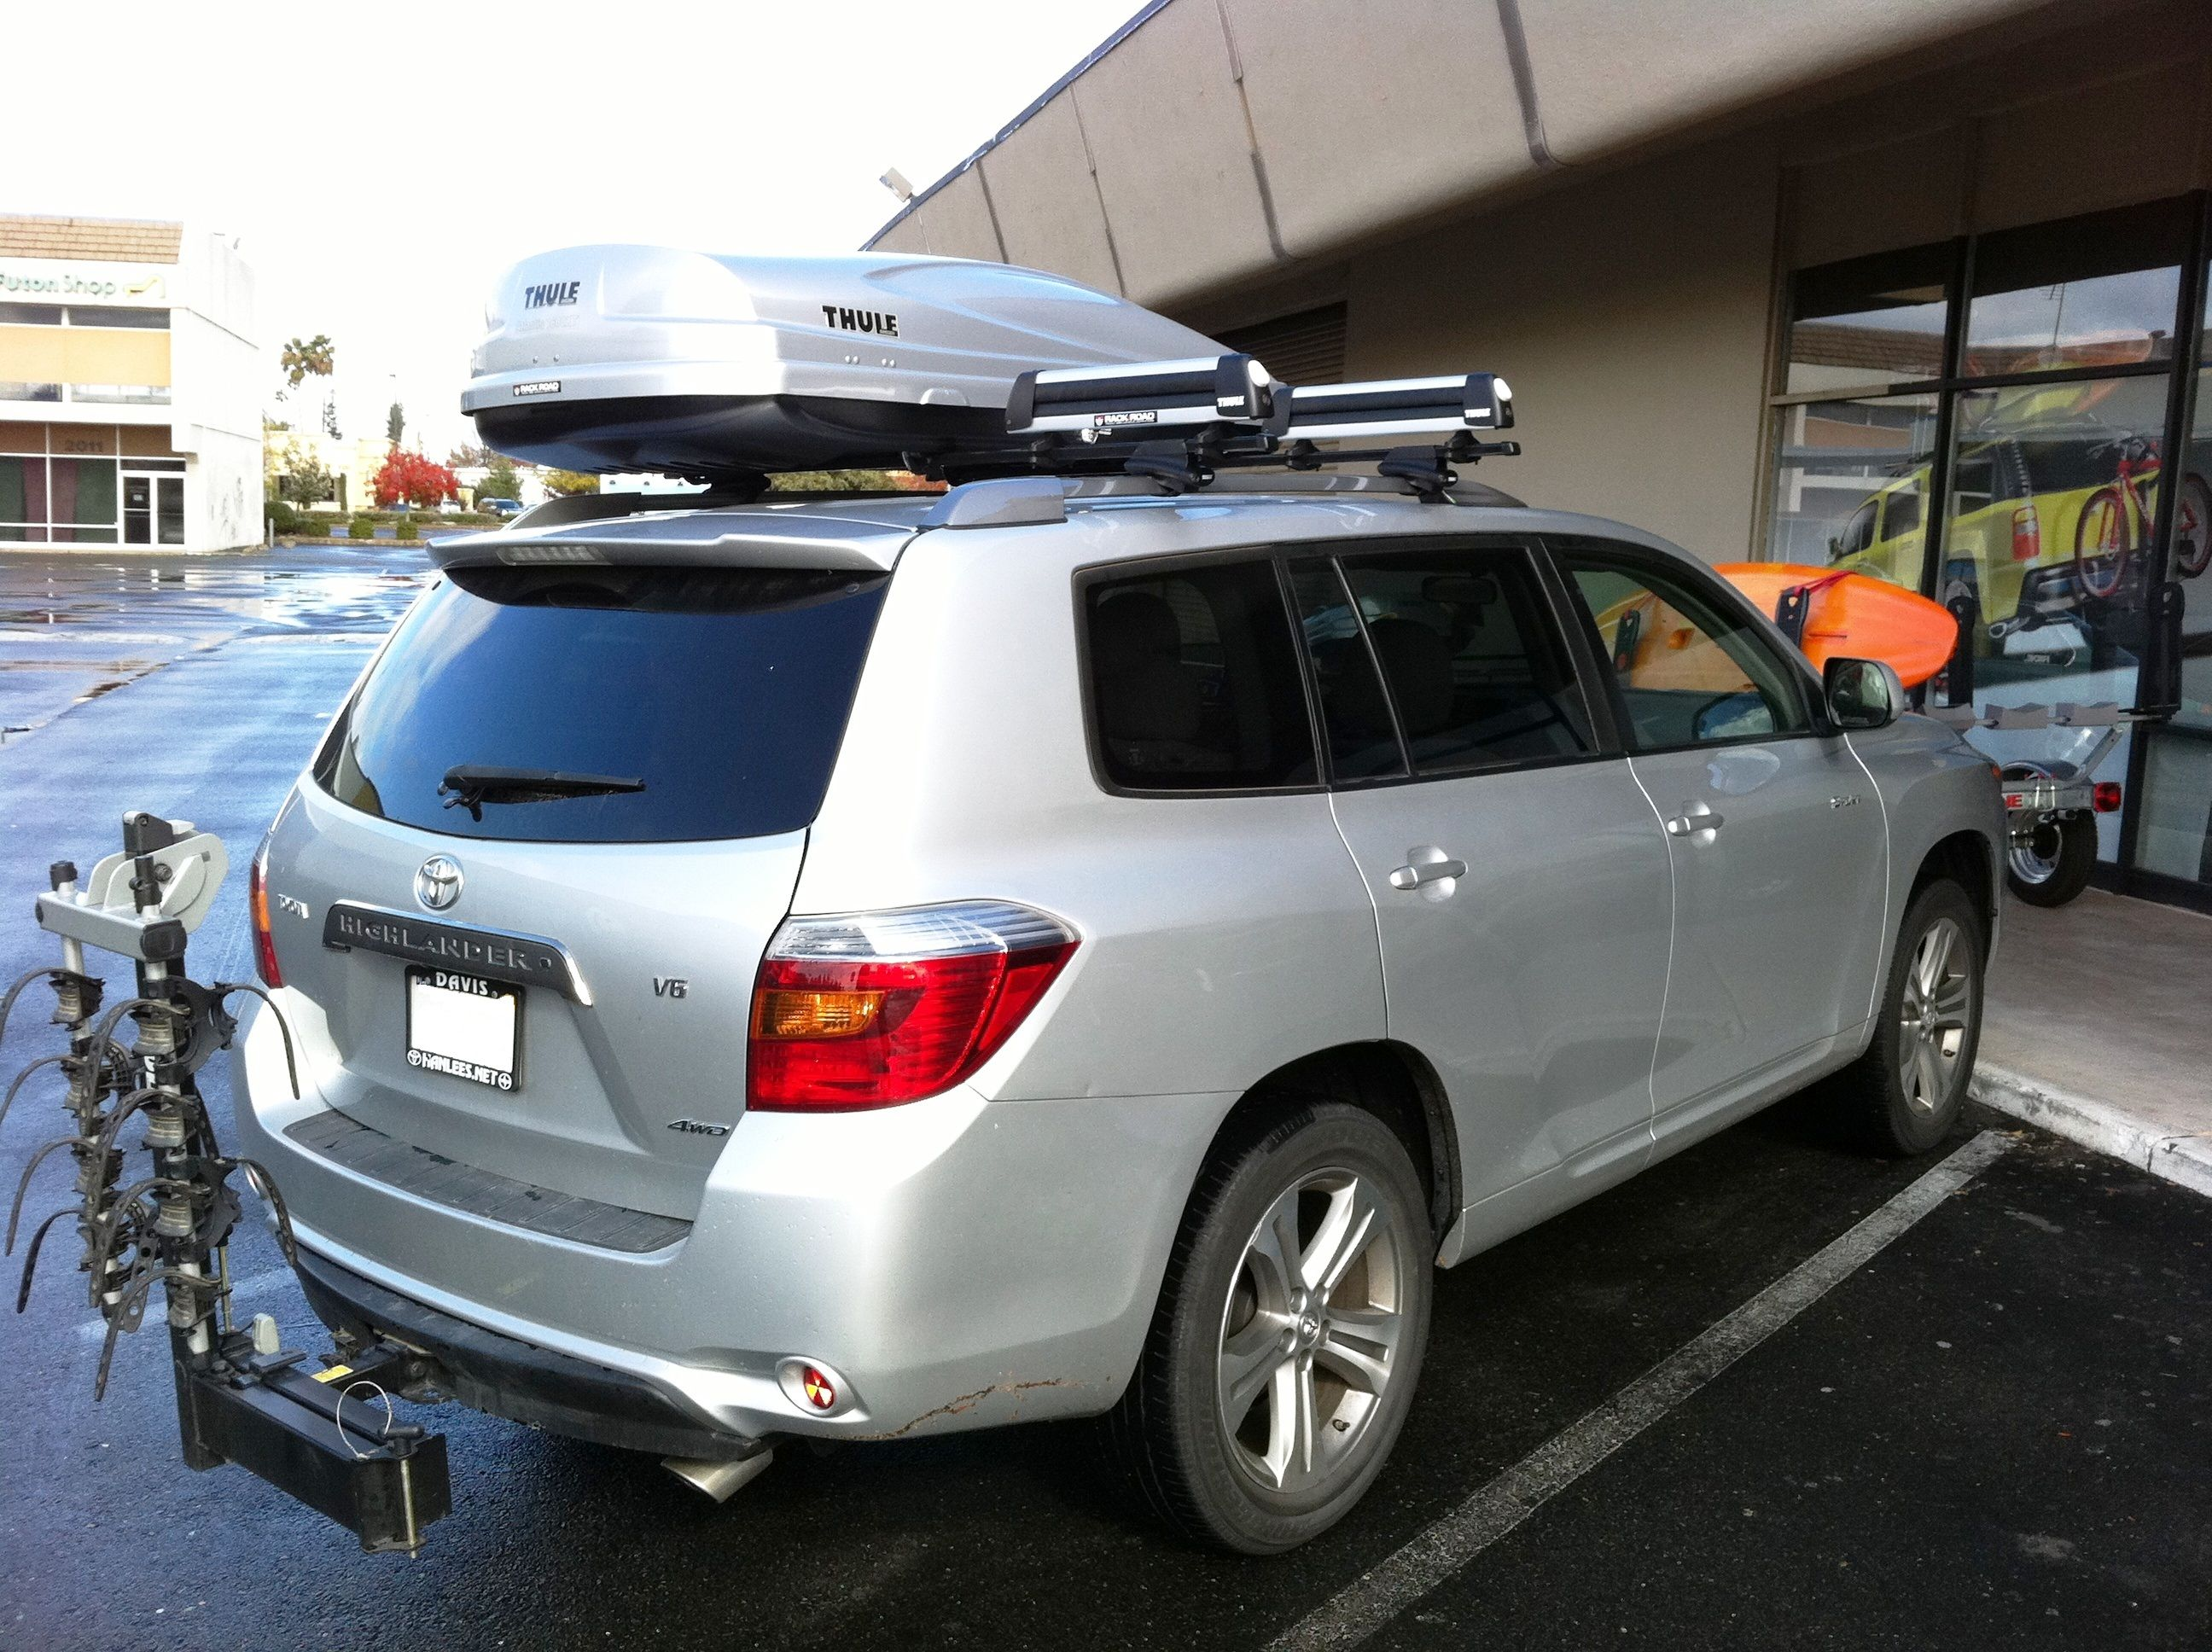 Rack n road is the largest retailer of bike racks car roof racks bicycle racks cargo carriers and trailer hitches of all popular brands including yakima